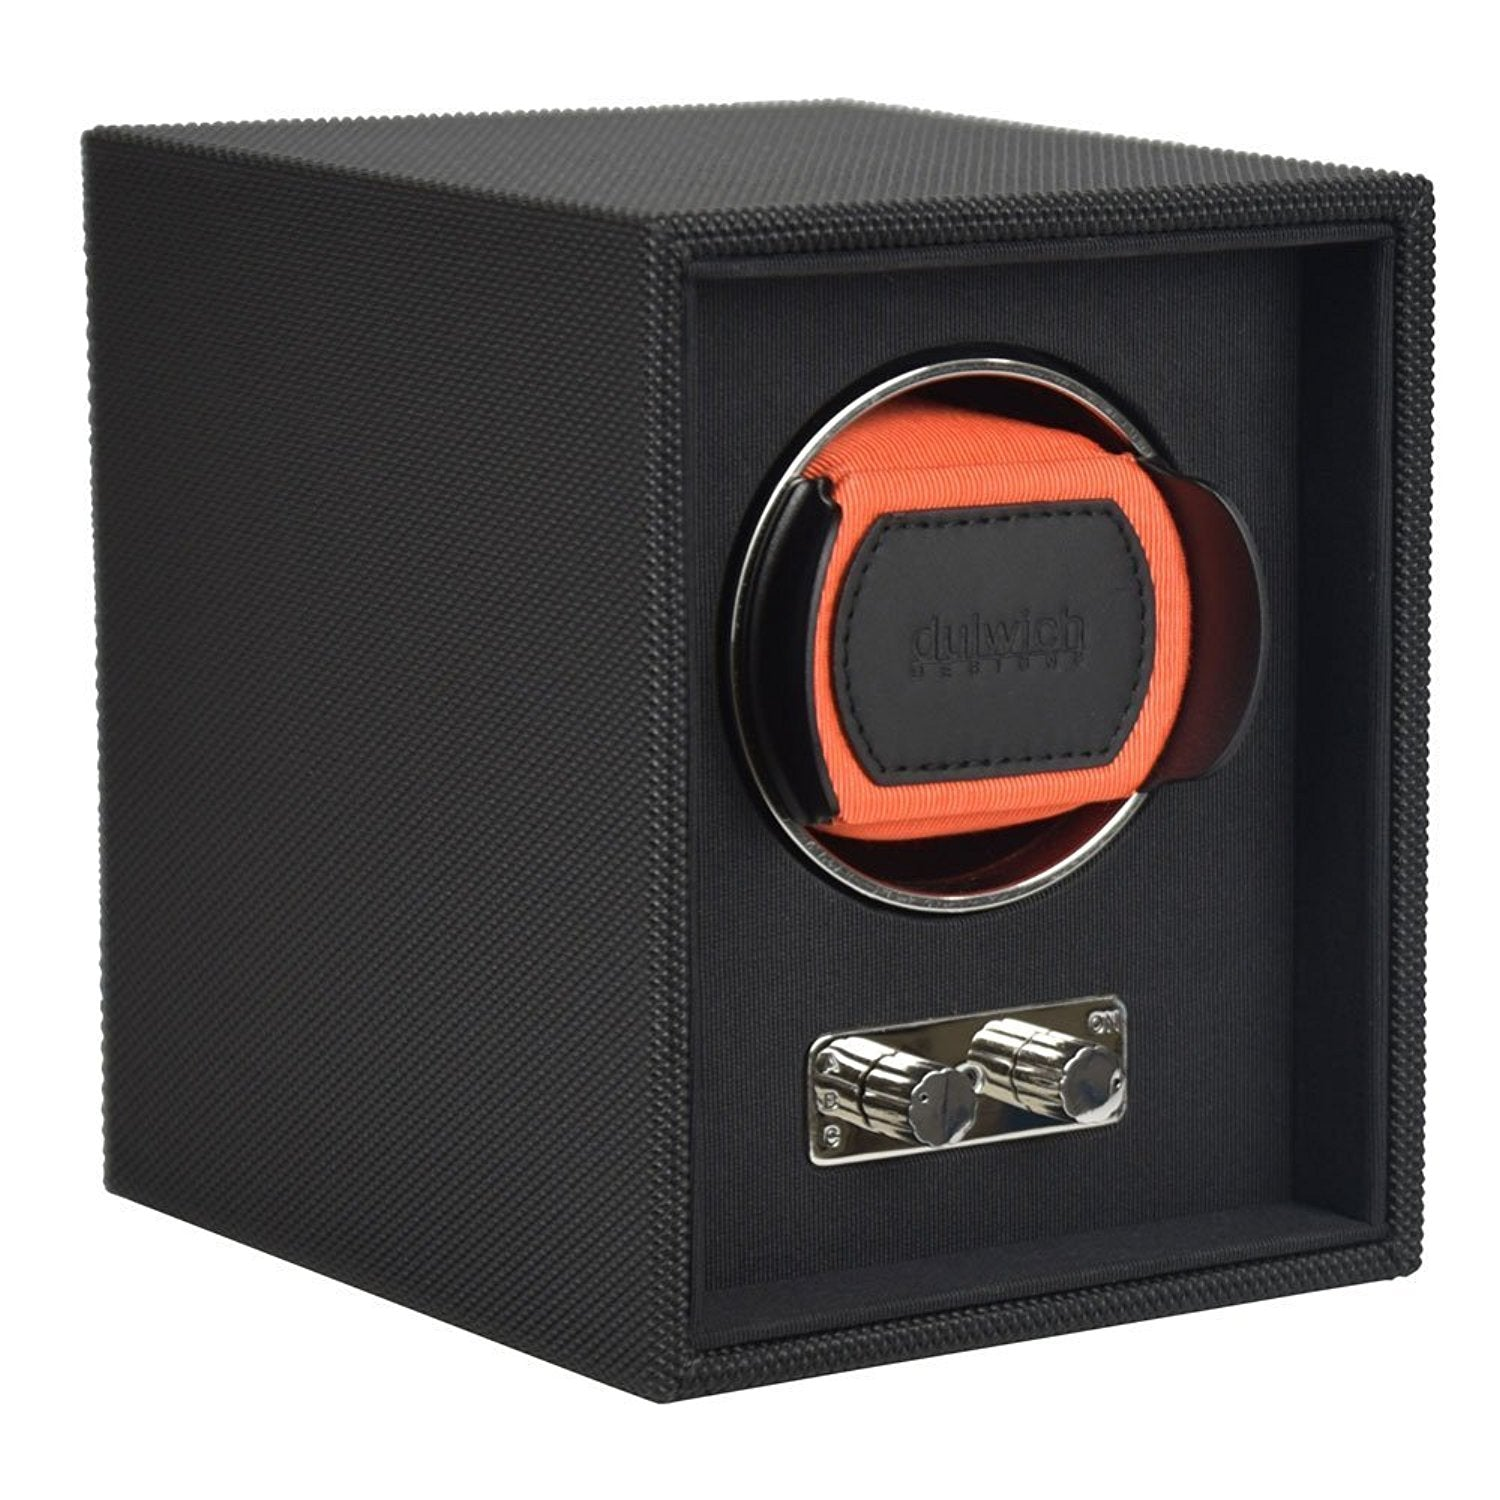 Goodwood Dulwich Orange Single Watch rotator Watch Winder